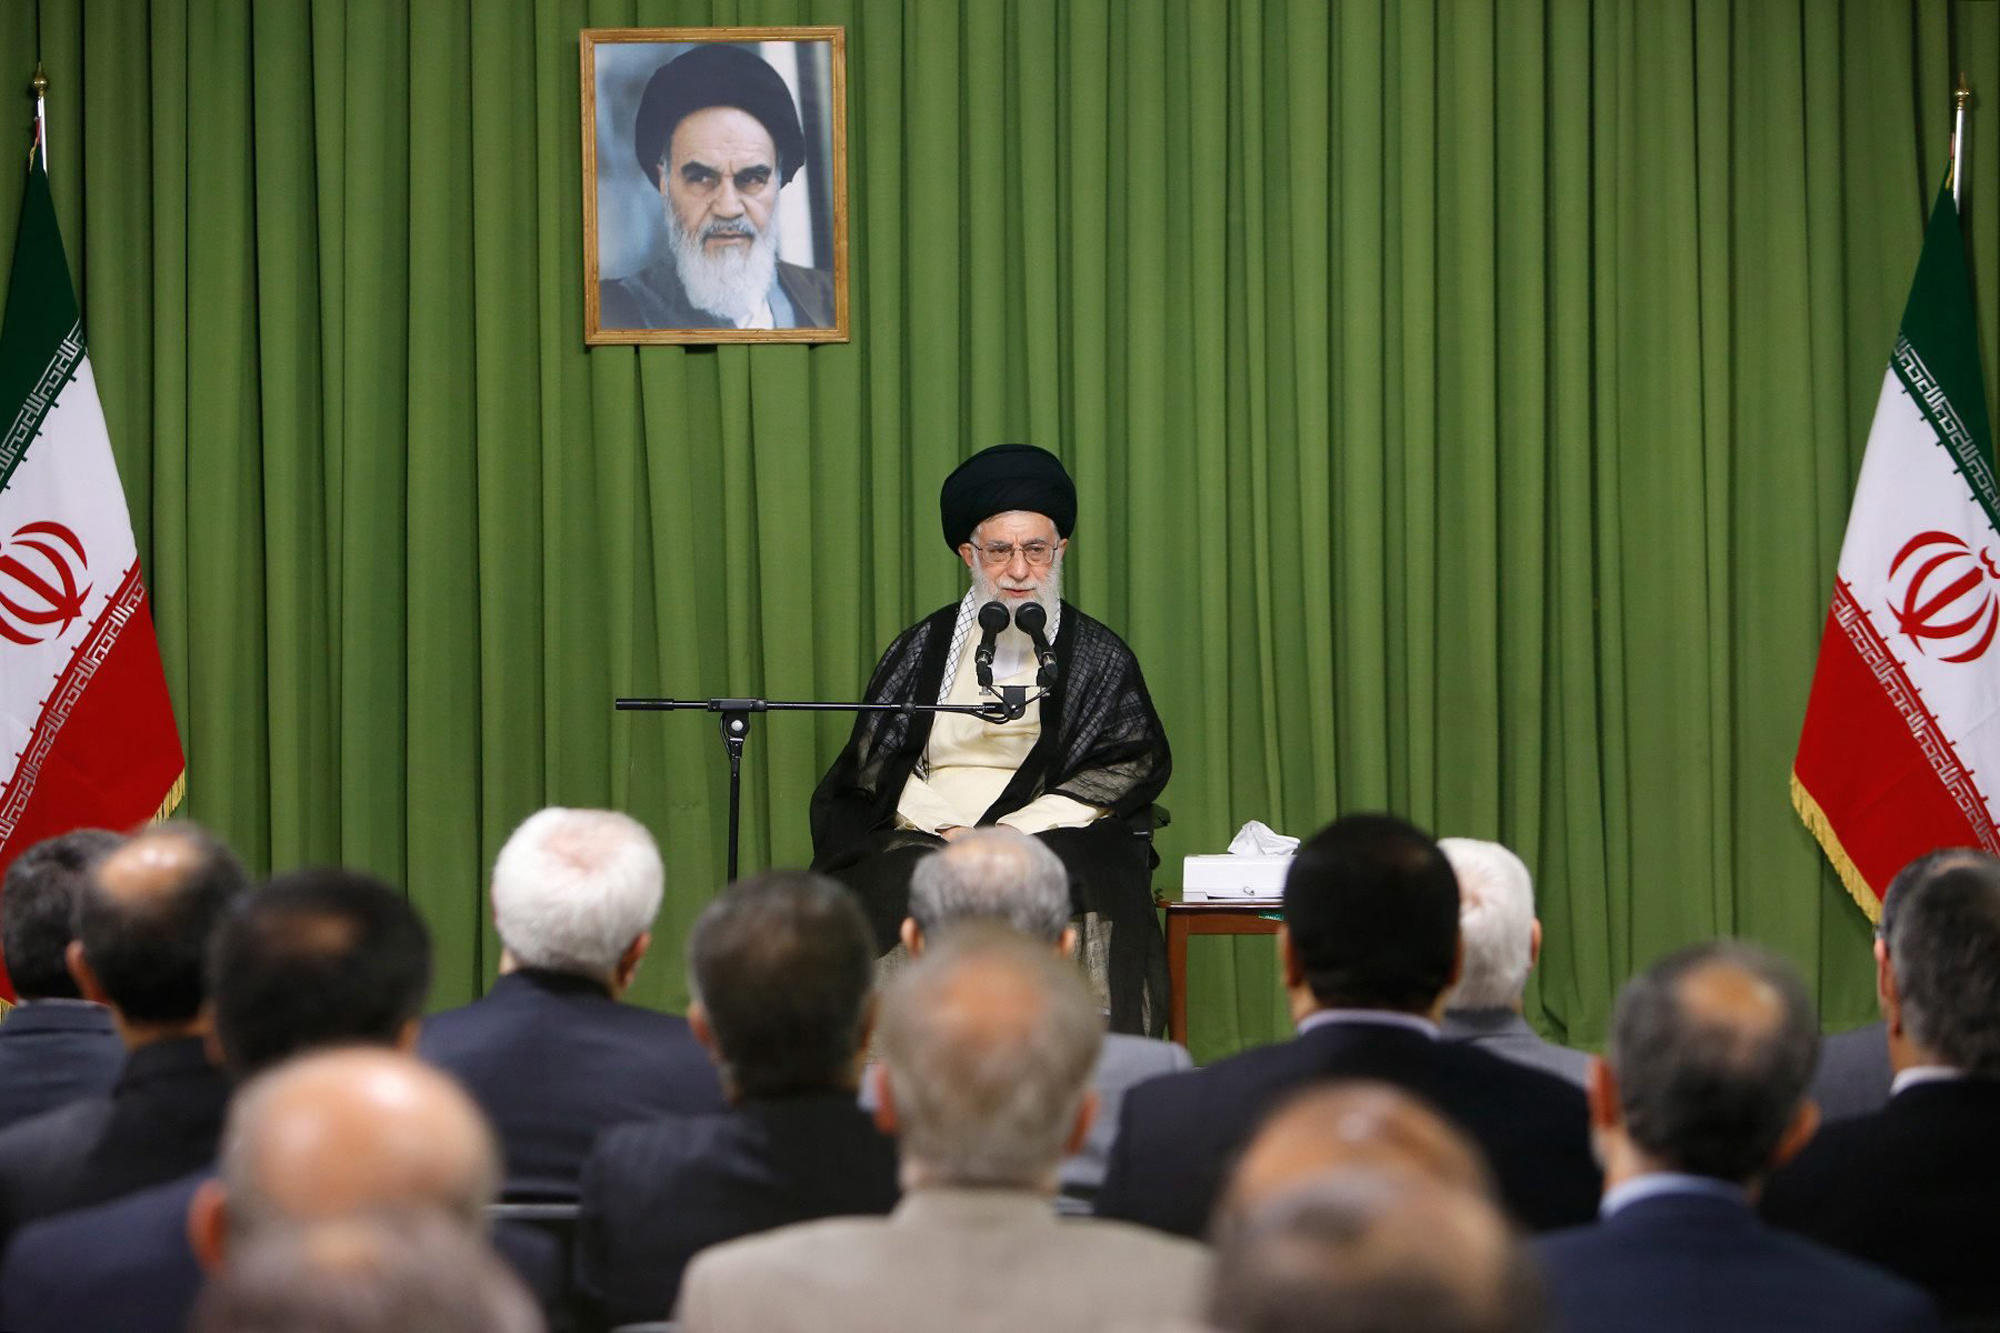 Iran's Supreme leader Ayatollah Ali Khamenei speaking to Iranian ambassadors abroad during a ceremony in Tehran, Aug. 13, 2014.